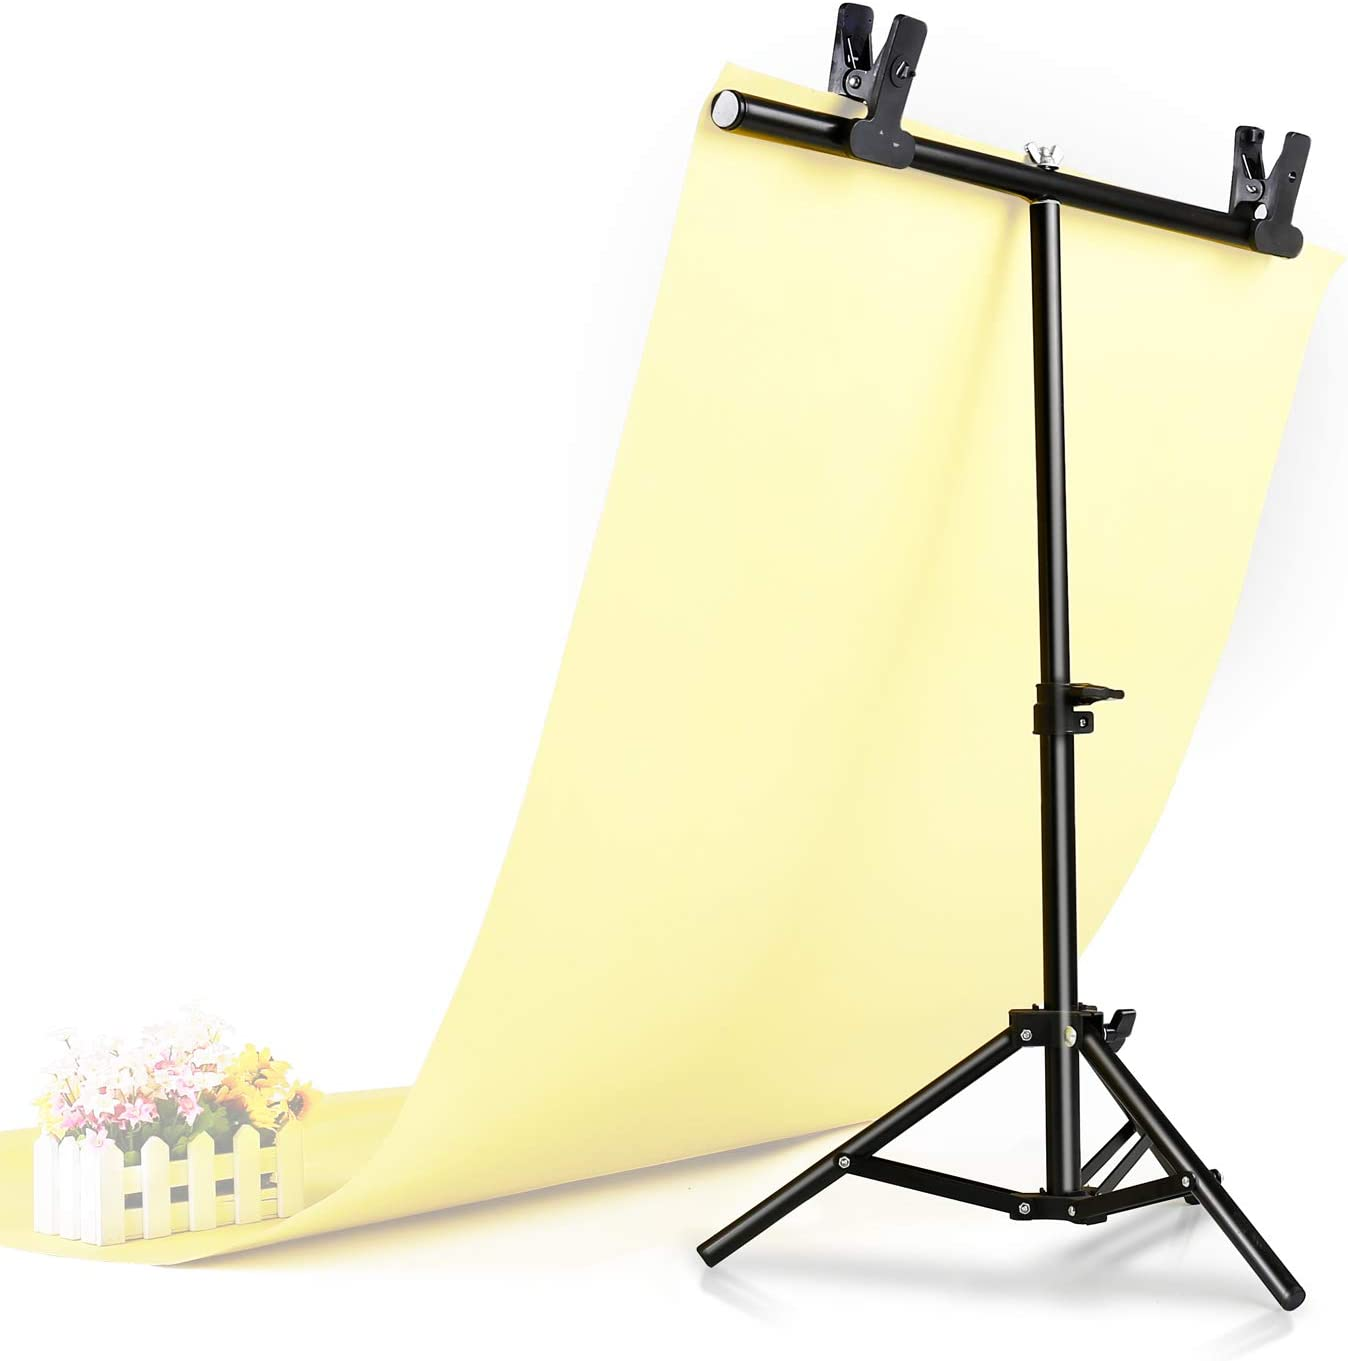 BNSDMM T-Shape Background Backdrop Support Stand Kit 60x70cmT Type Background Plate Bracket PVC Background Plate Aluminum Alloy Material Color : 63x130cm Blue Background Board